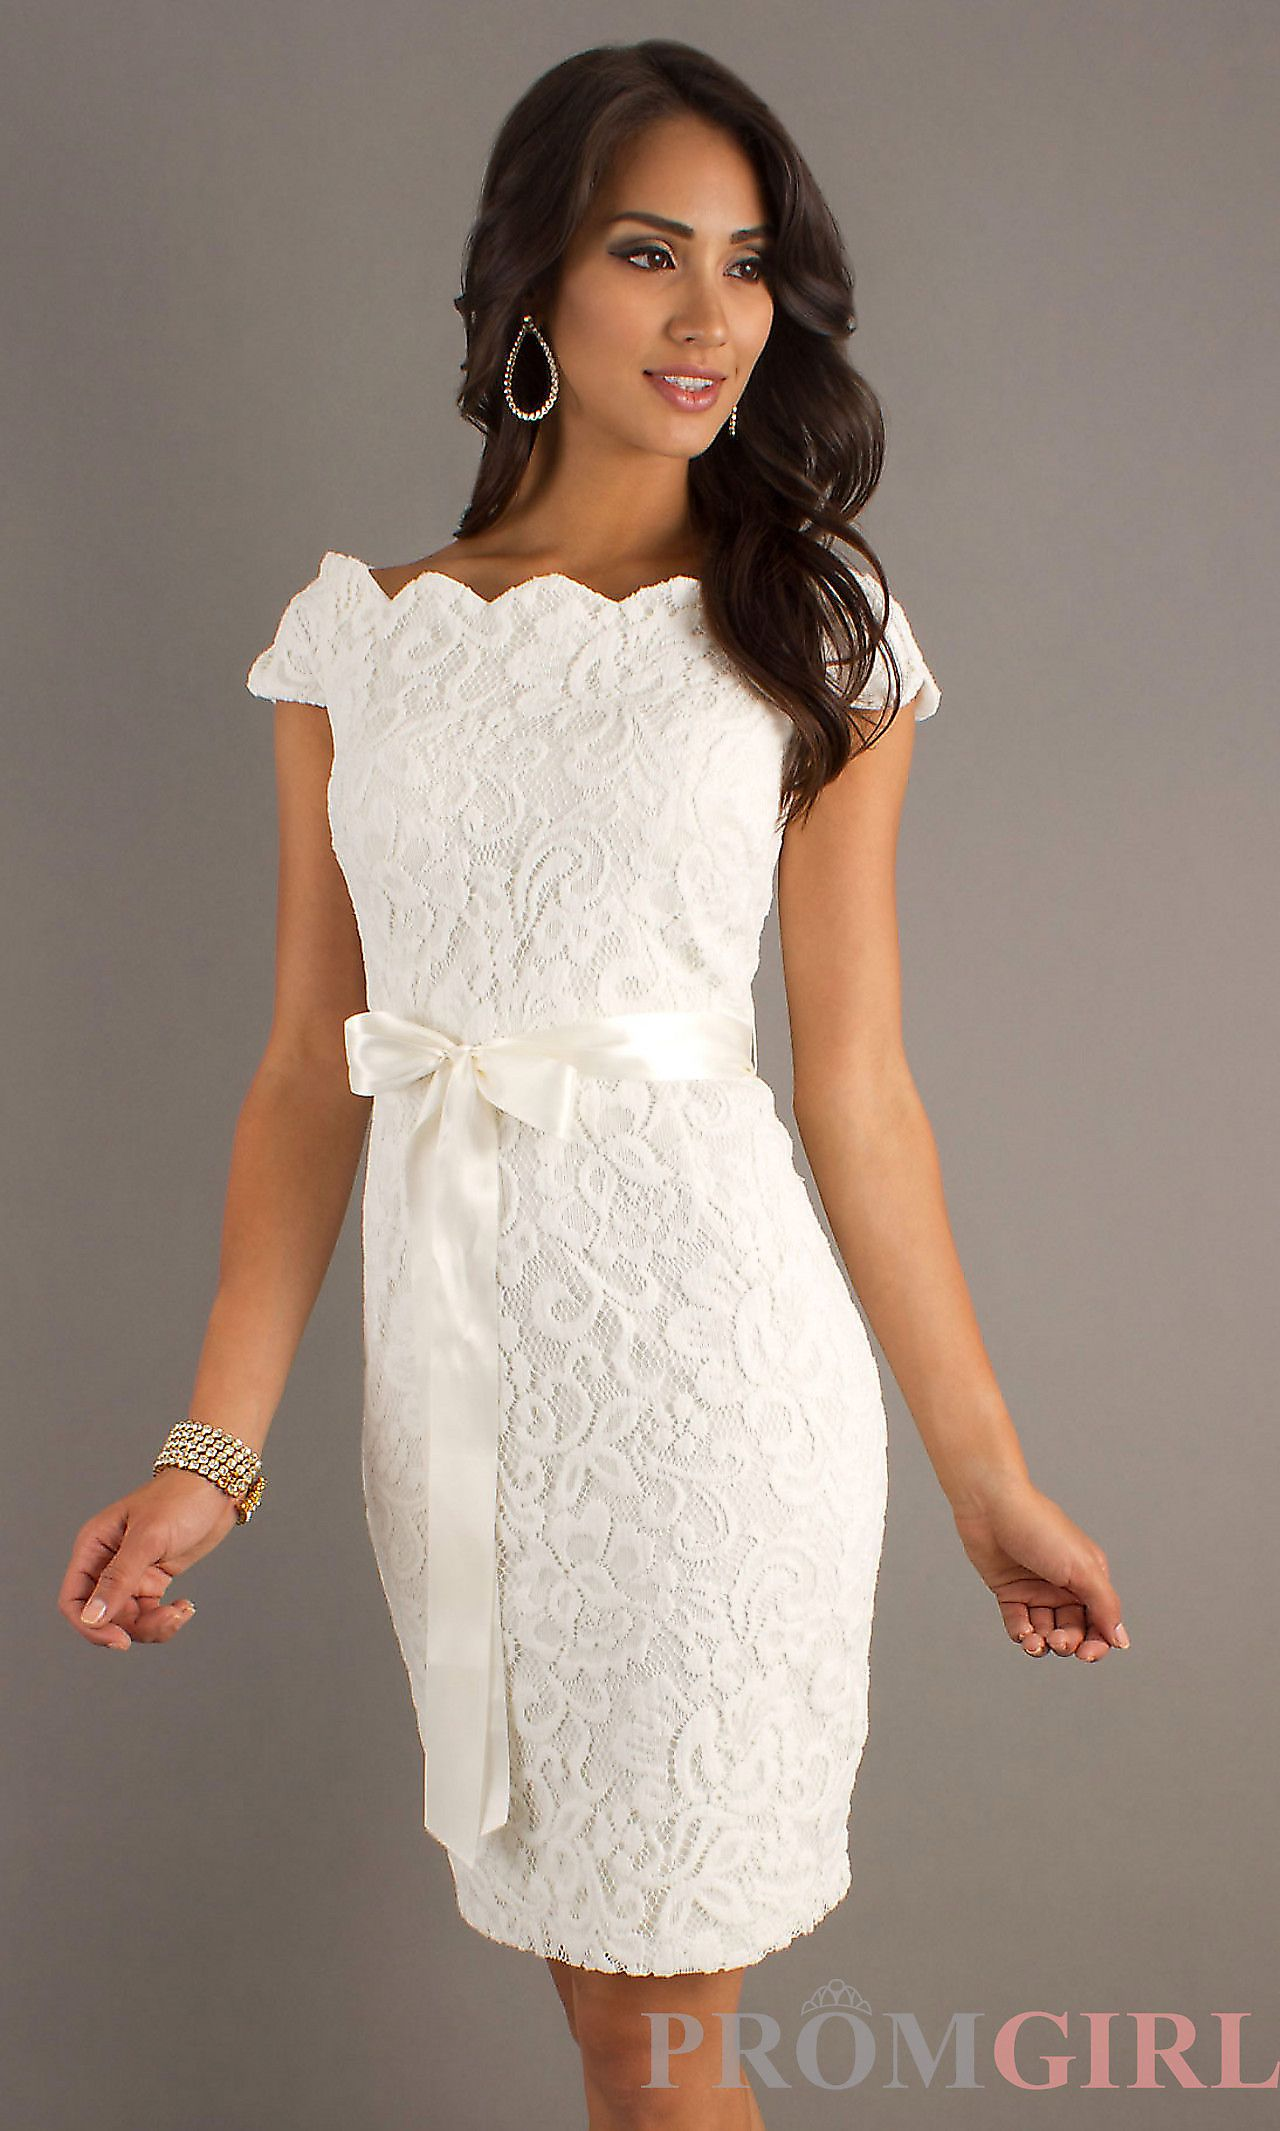 Medium Of White Bridal Shower Dress